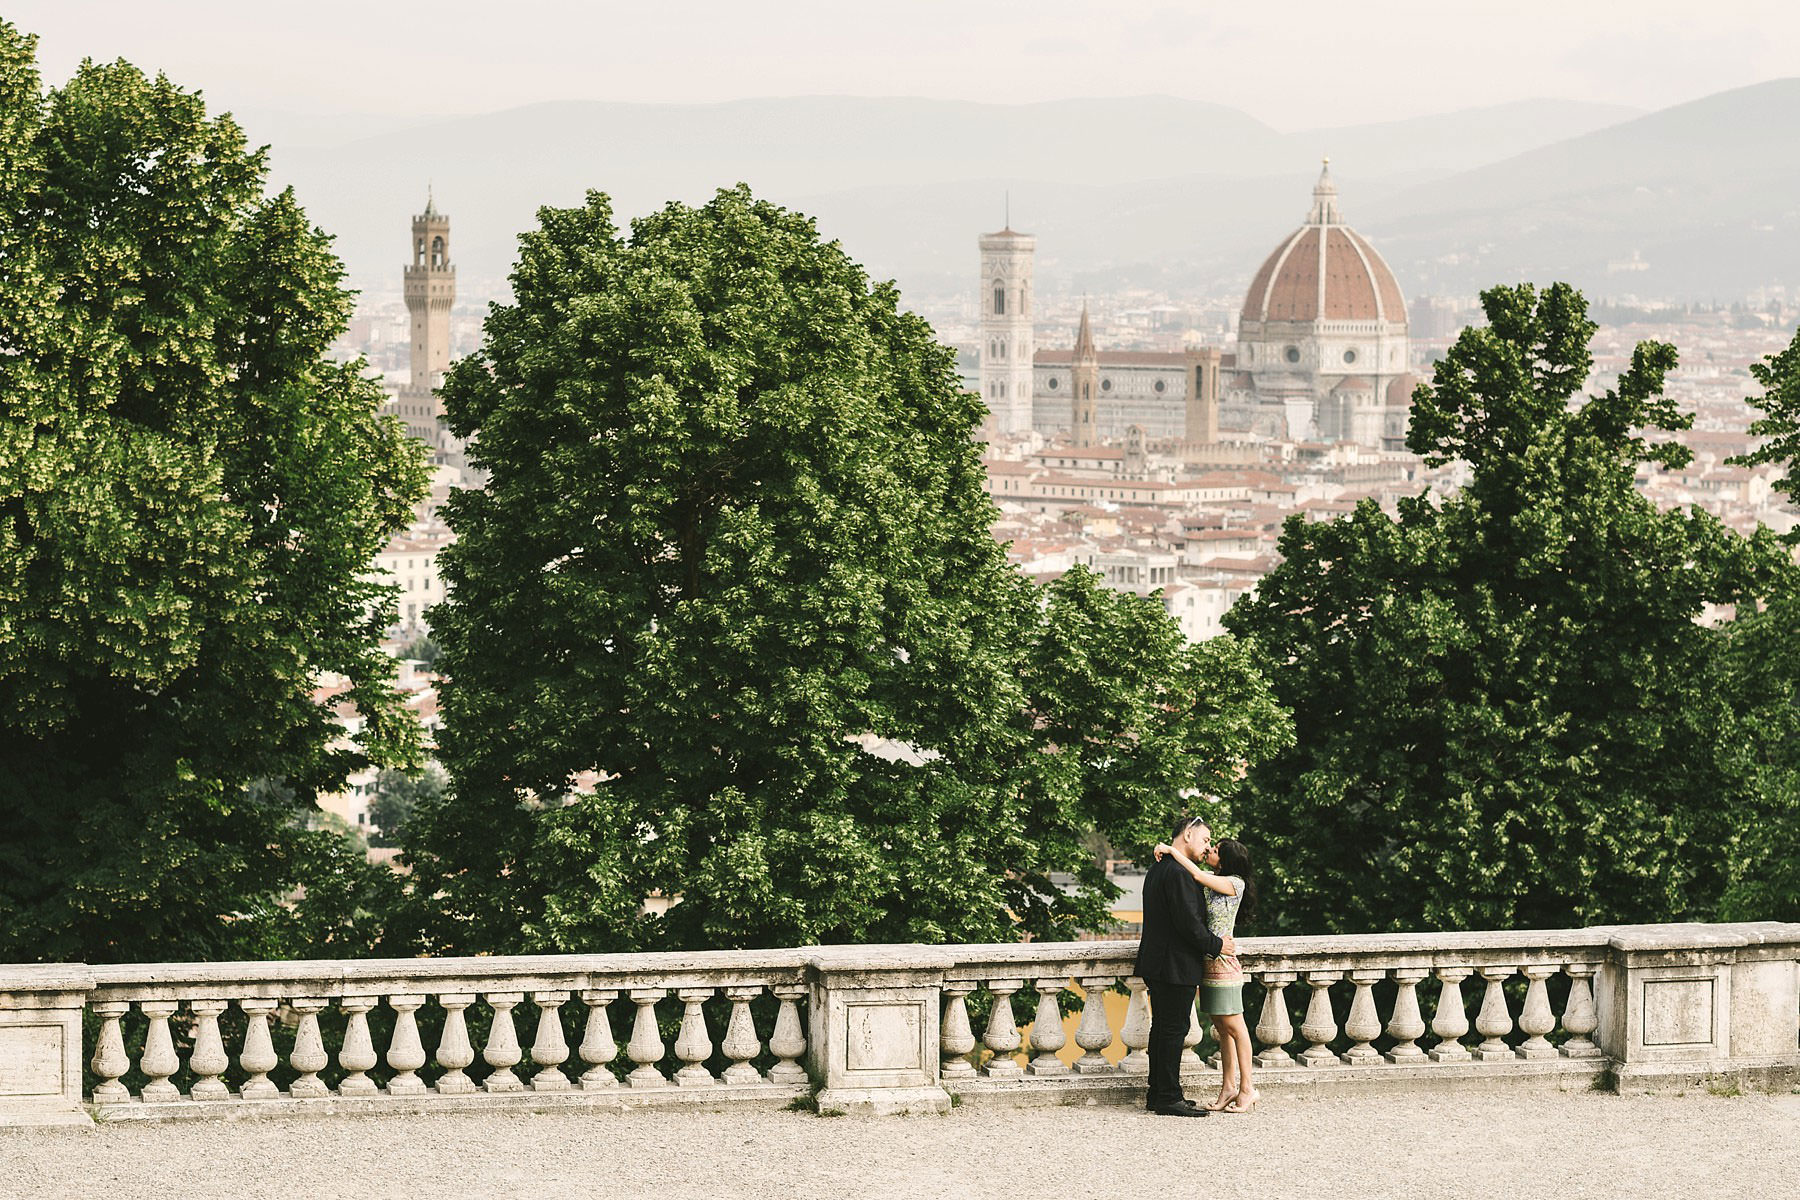 Build your memories during your vacation in Florence. Sunrise engagement photo shoot at San Miniato al Monte near Piazzale Michelangelo